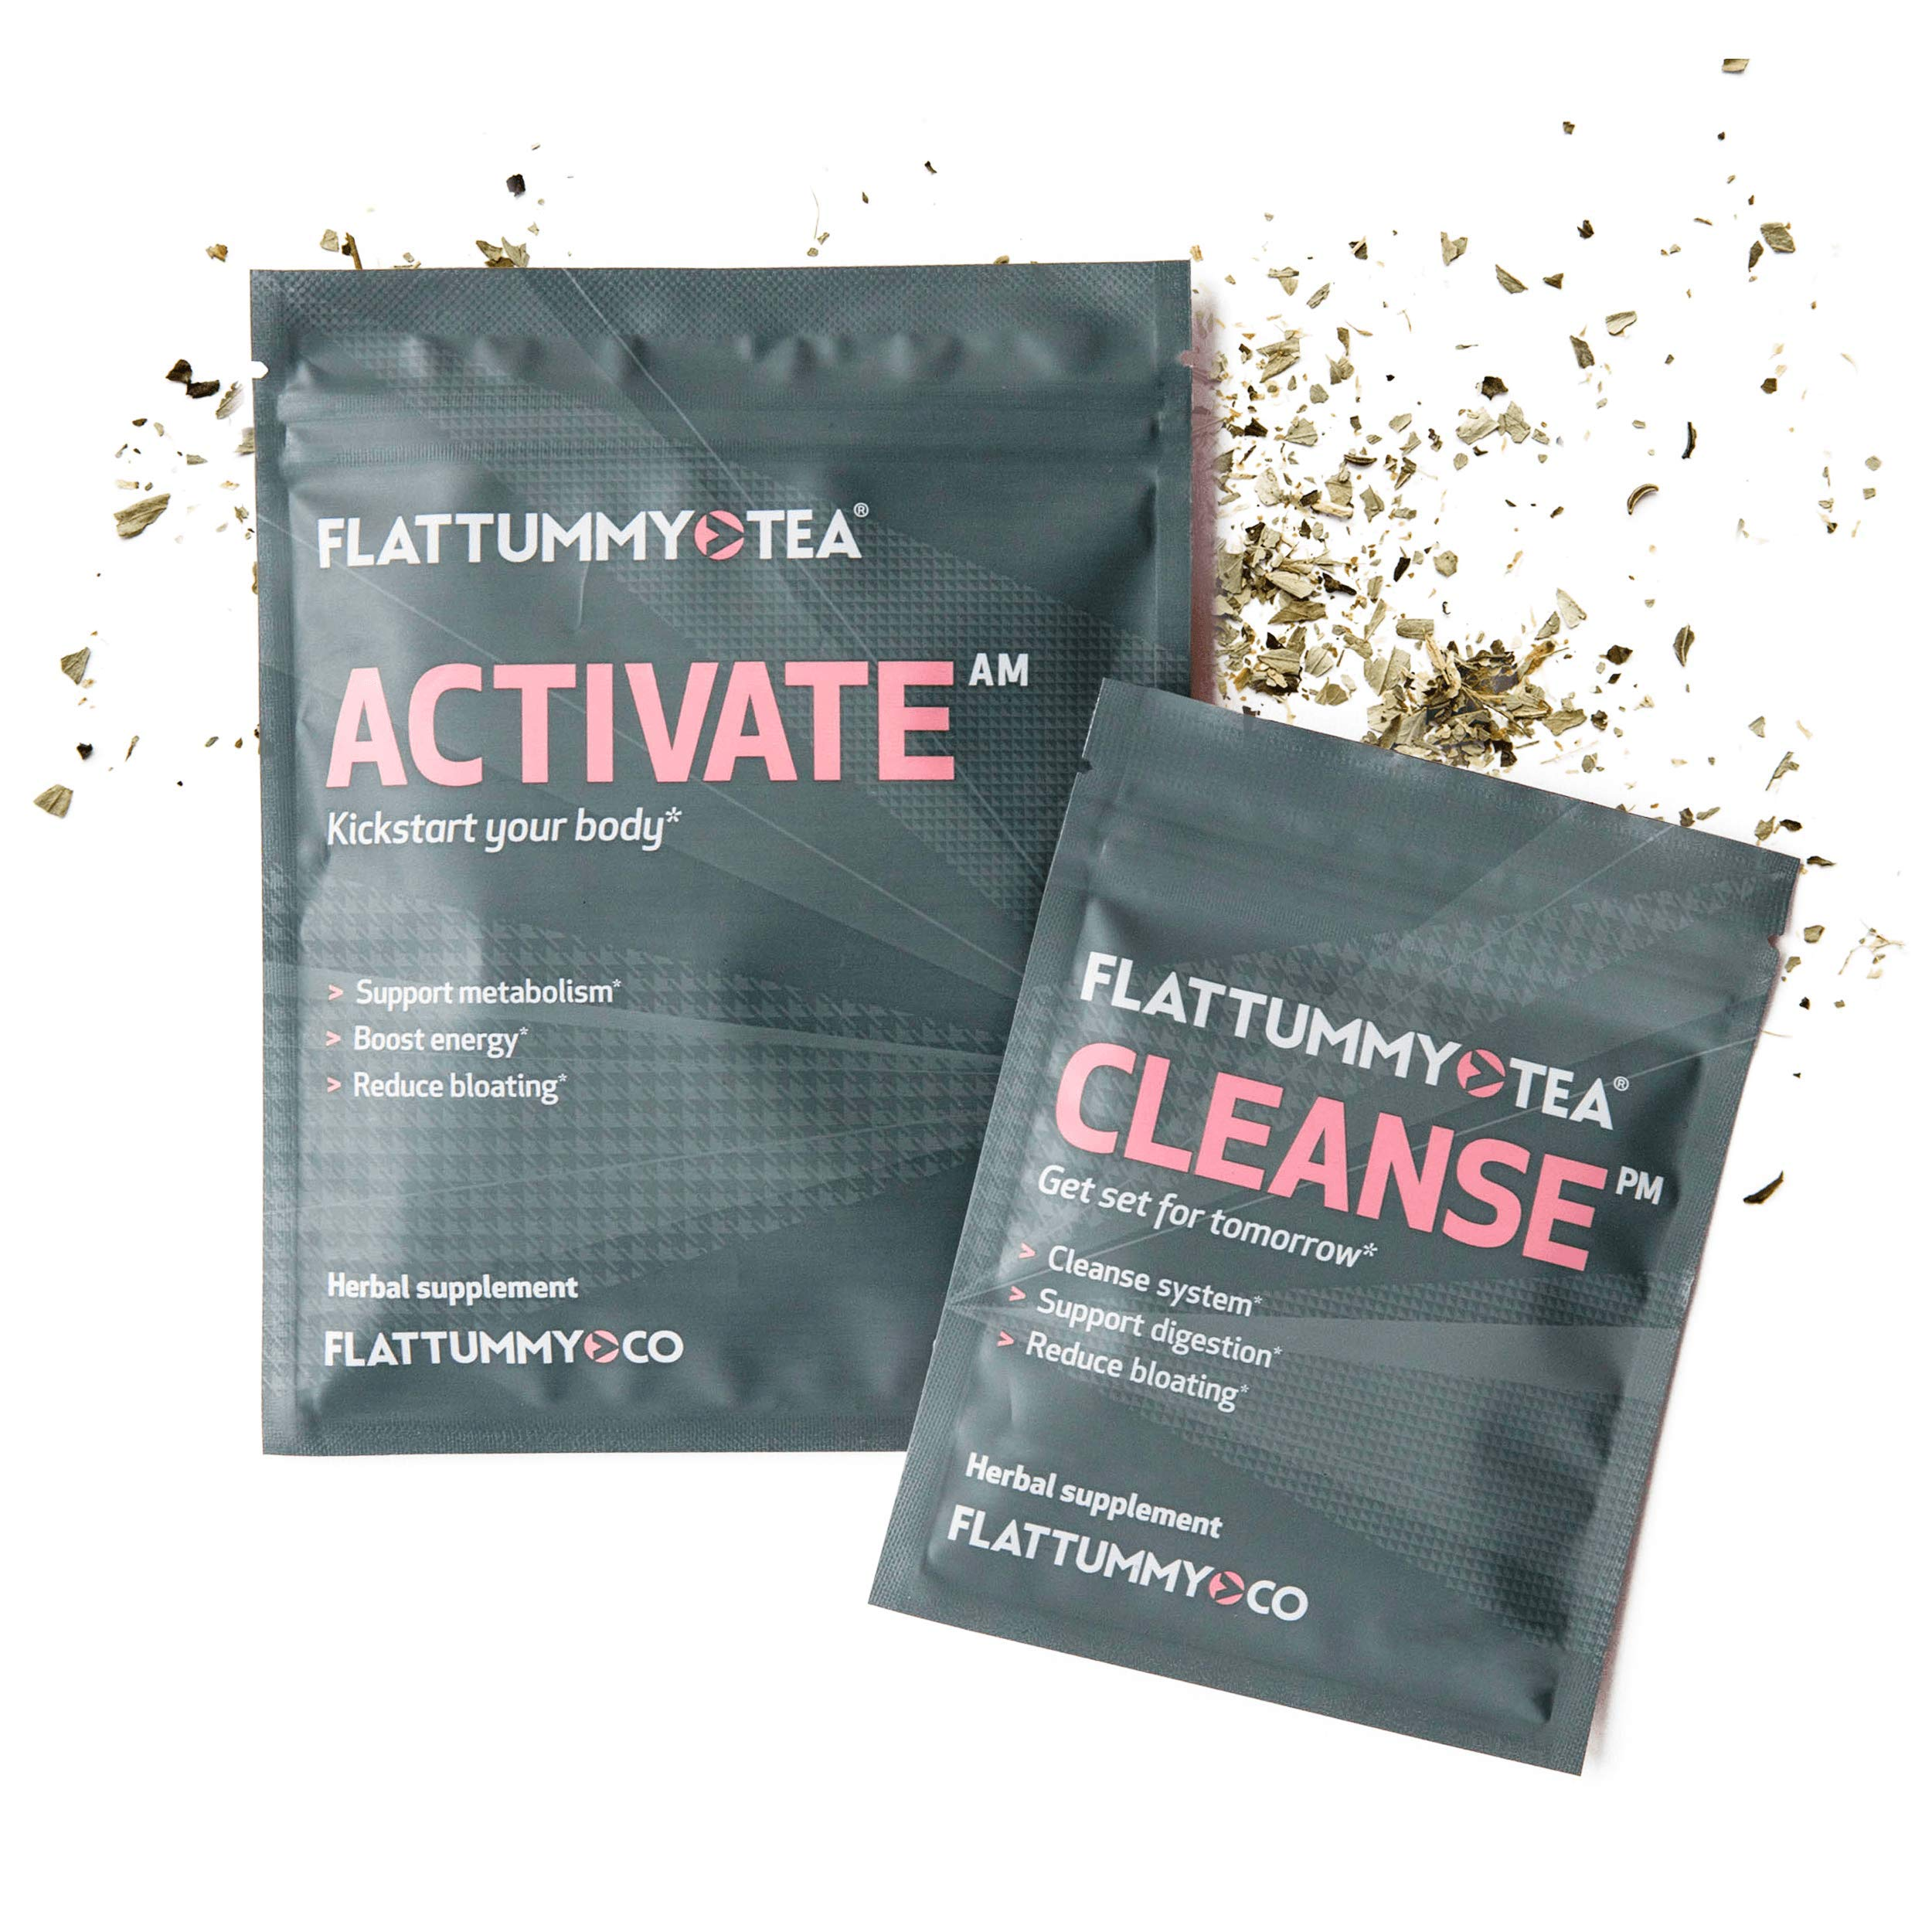 Flat Tummy Tea | All-Natural Detox Tea to Help with Bloating, Maintain Immune System and Boost Energy - 2 Step Metabolism Boosting Teatox System (28 Day Cleanse)